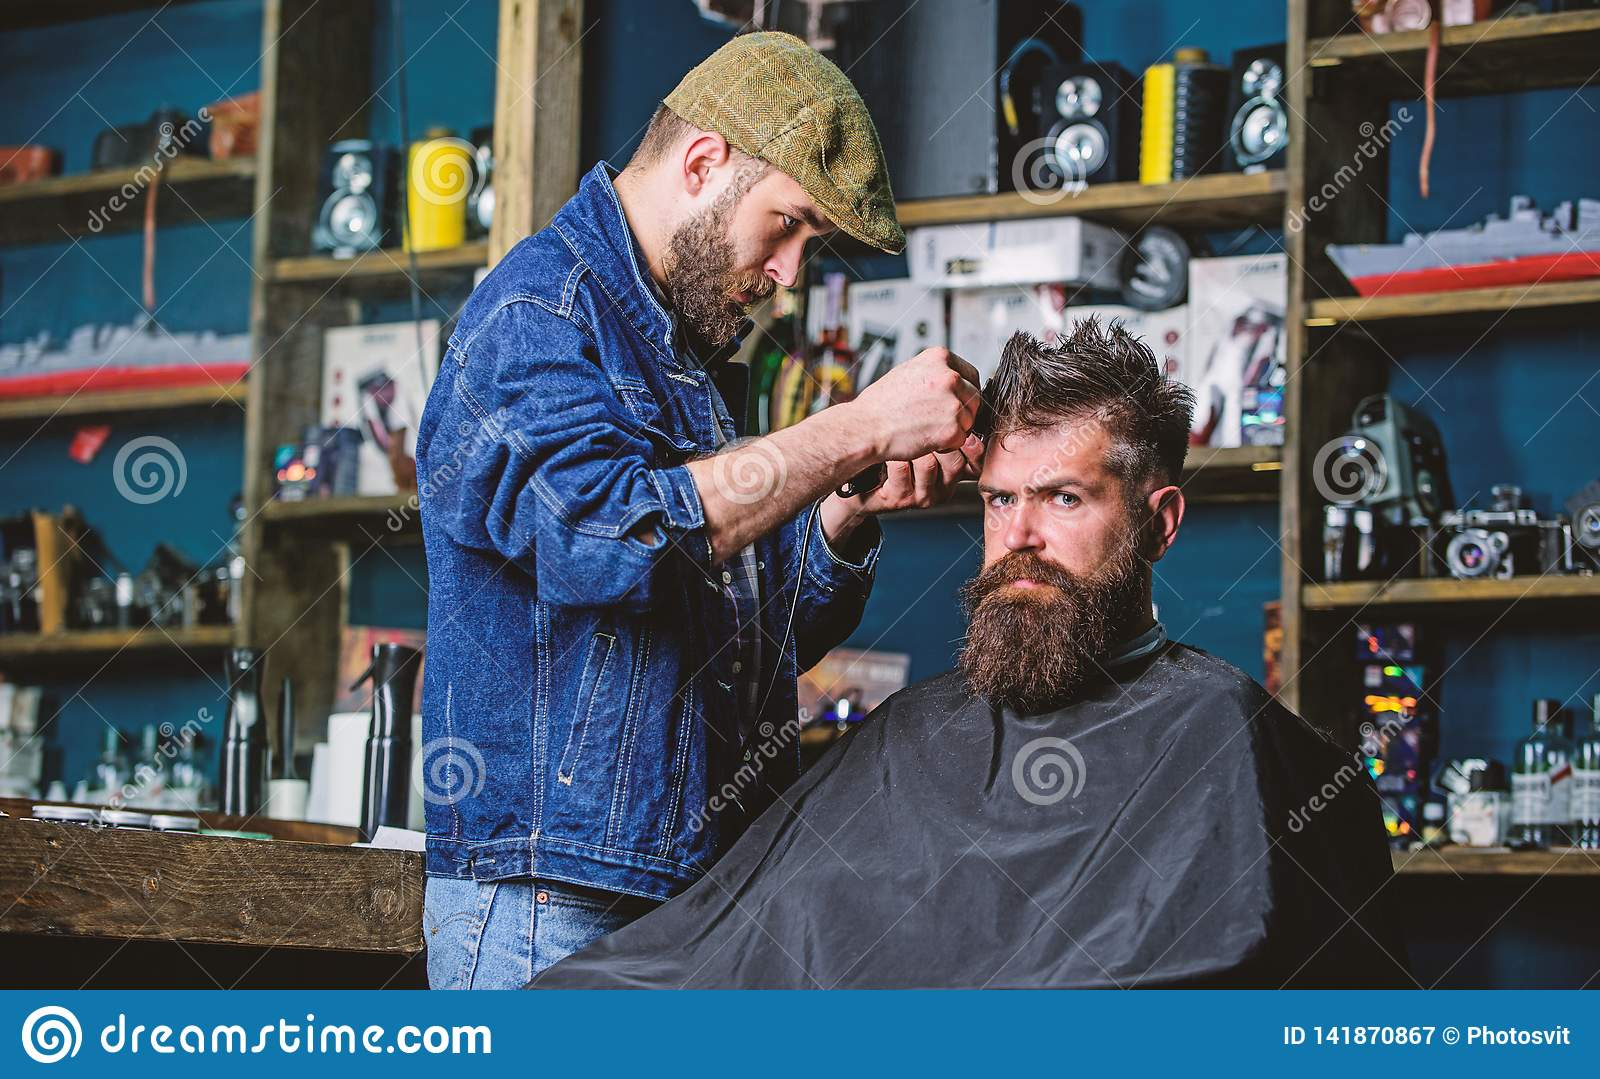 Hipster client getting haircut. Barber with hair clipper works on hairstyle for bearded man barbershop background